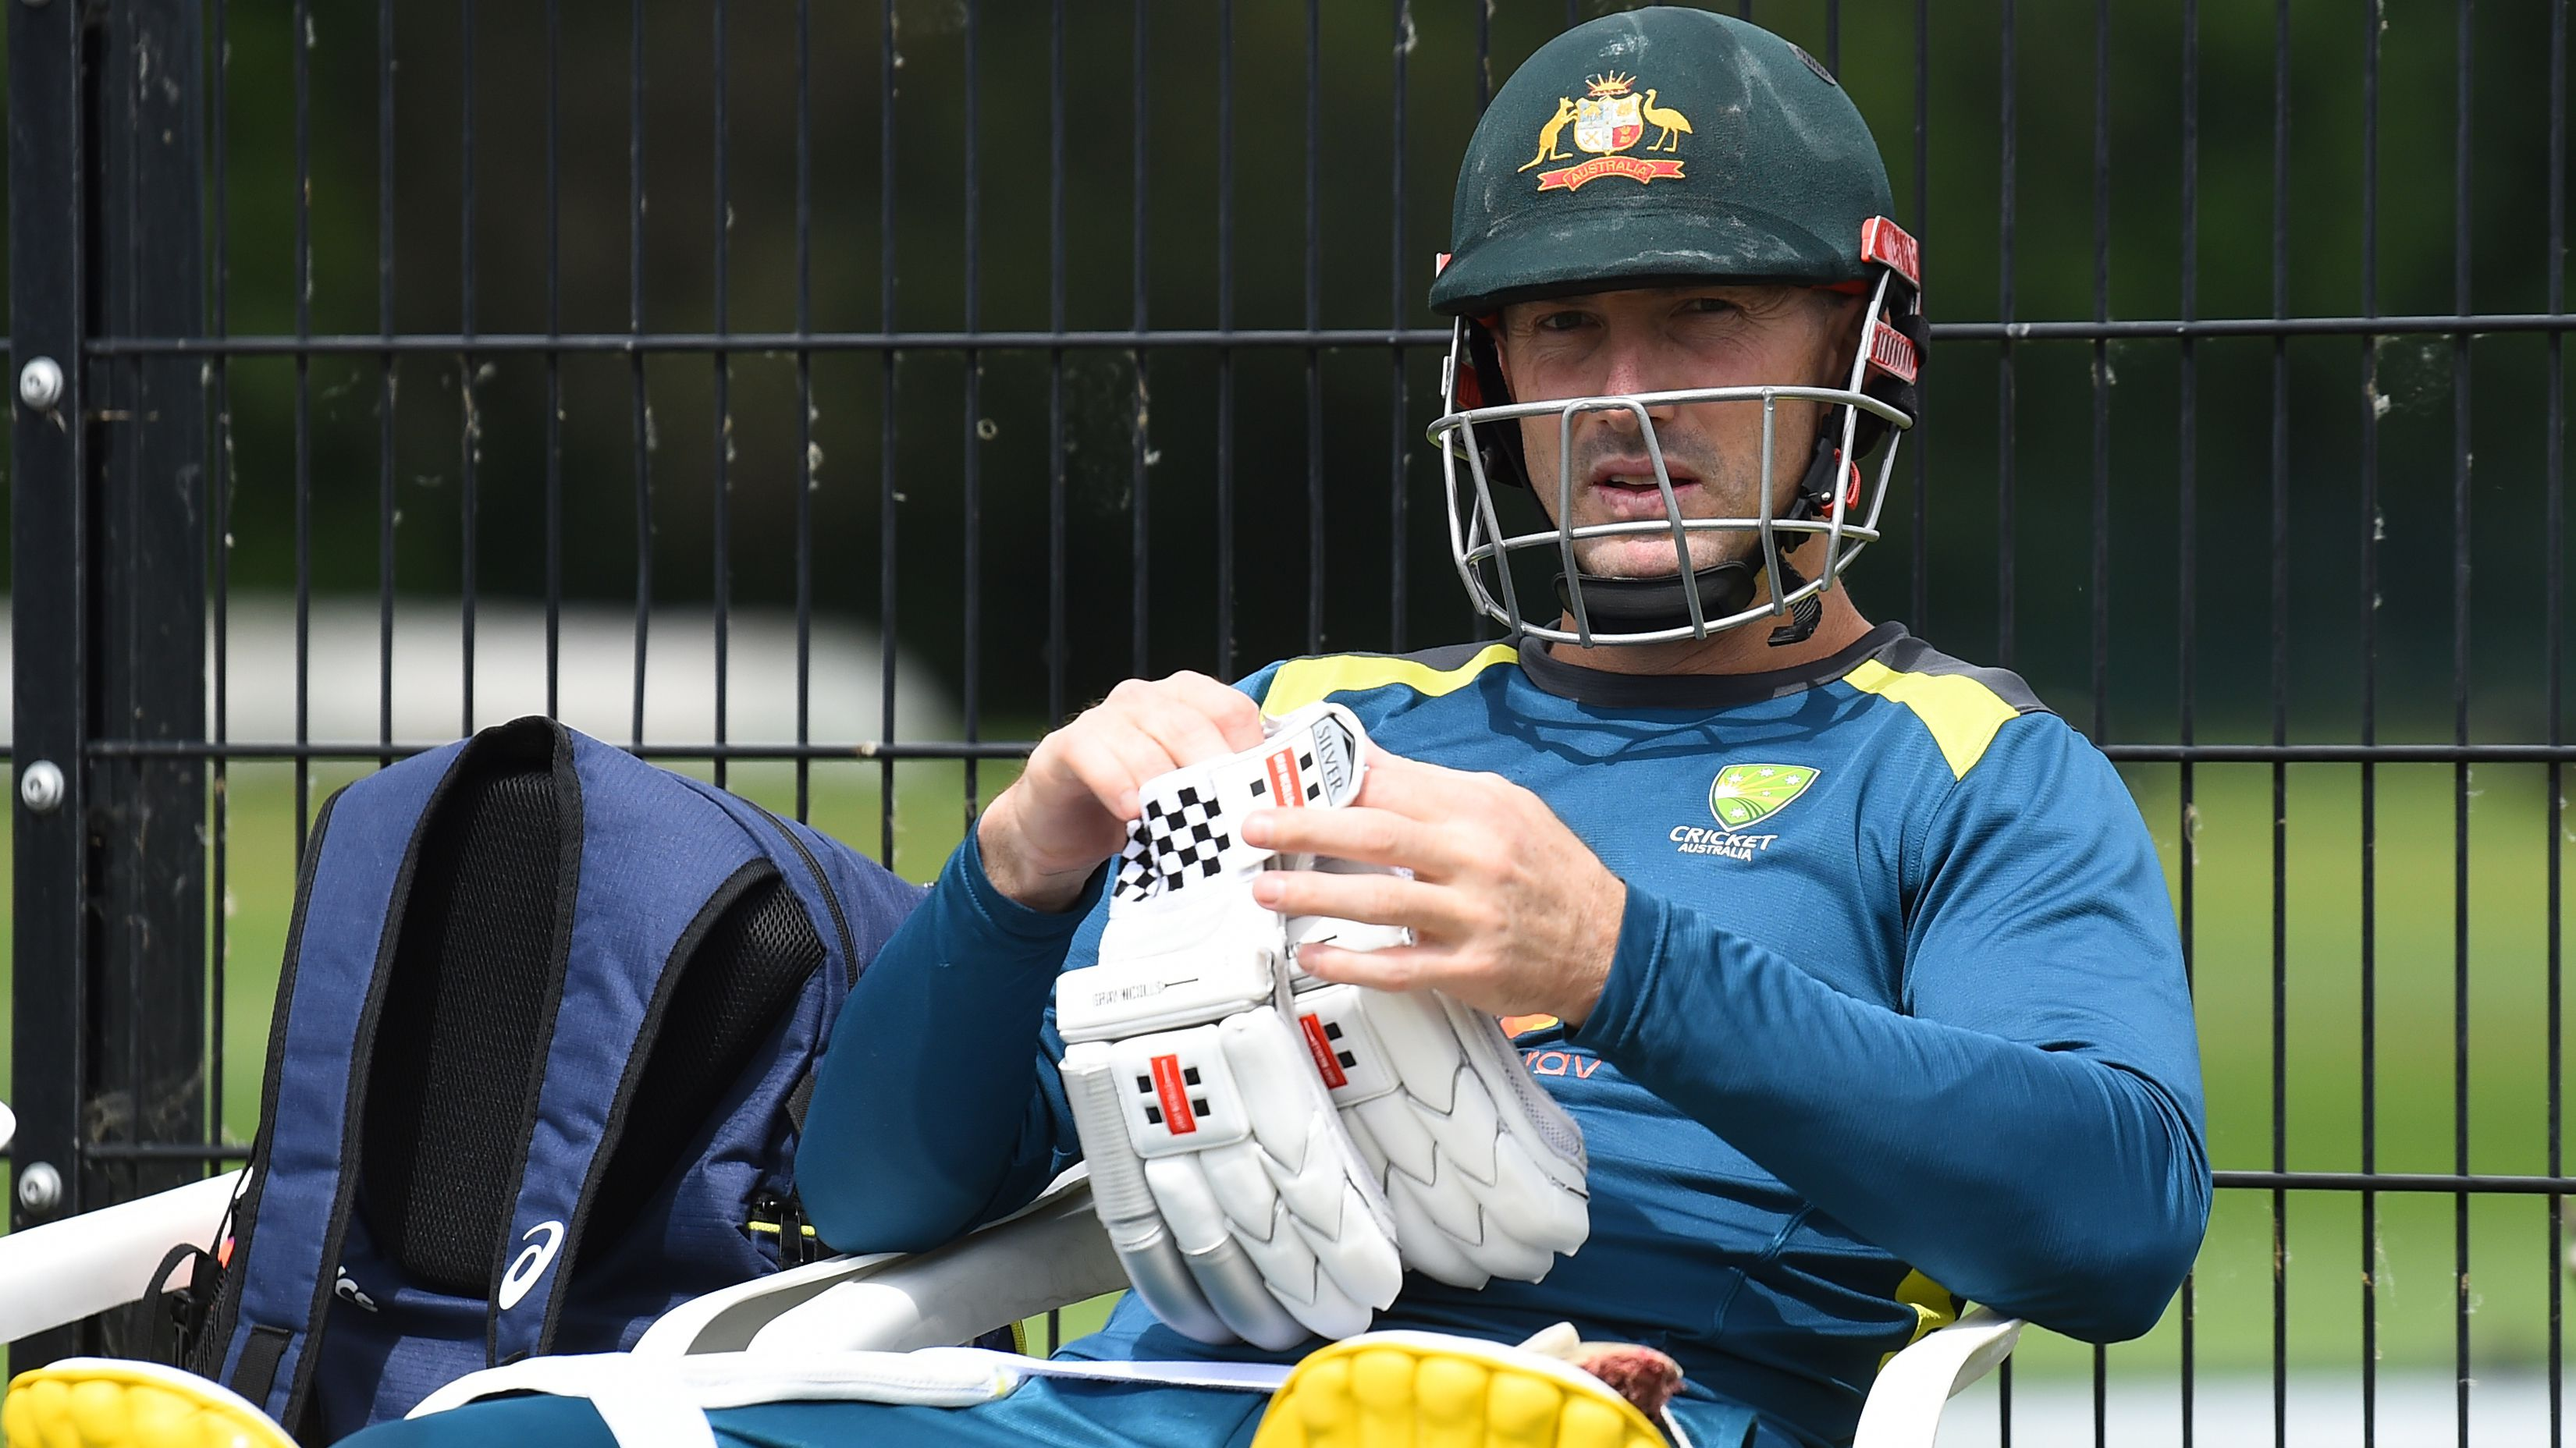 Justin Langer confirms Shaun Marsh in contention for opening spot against India